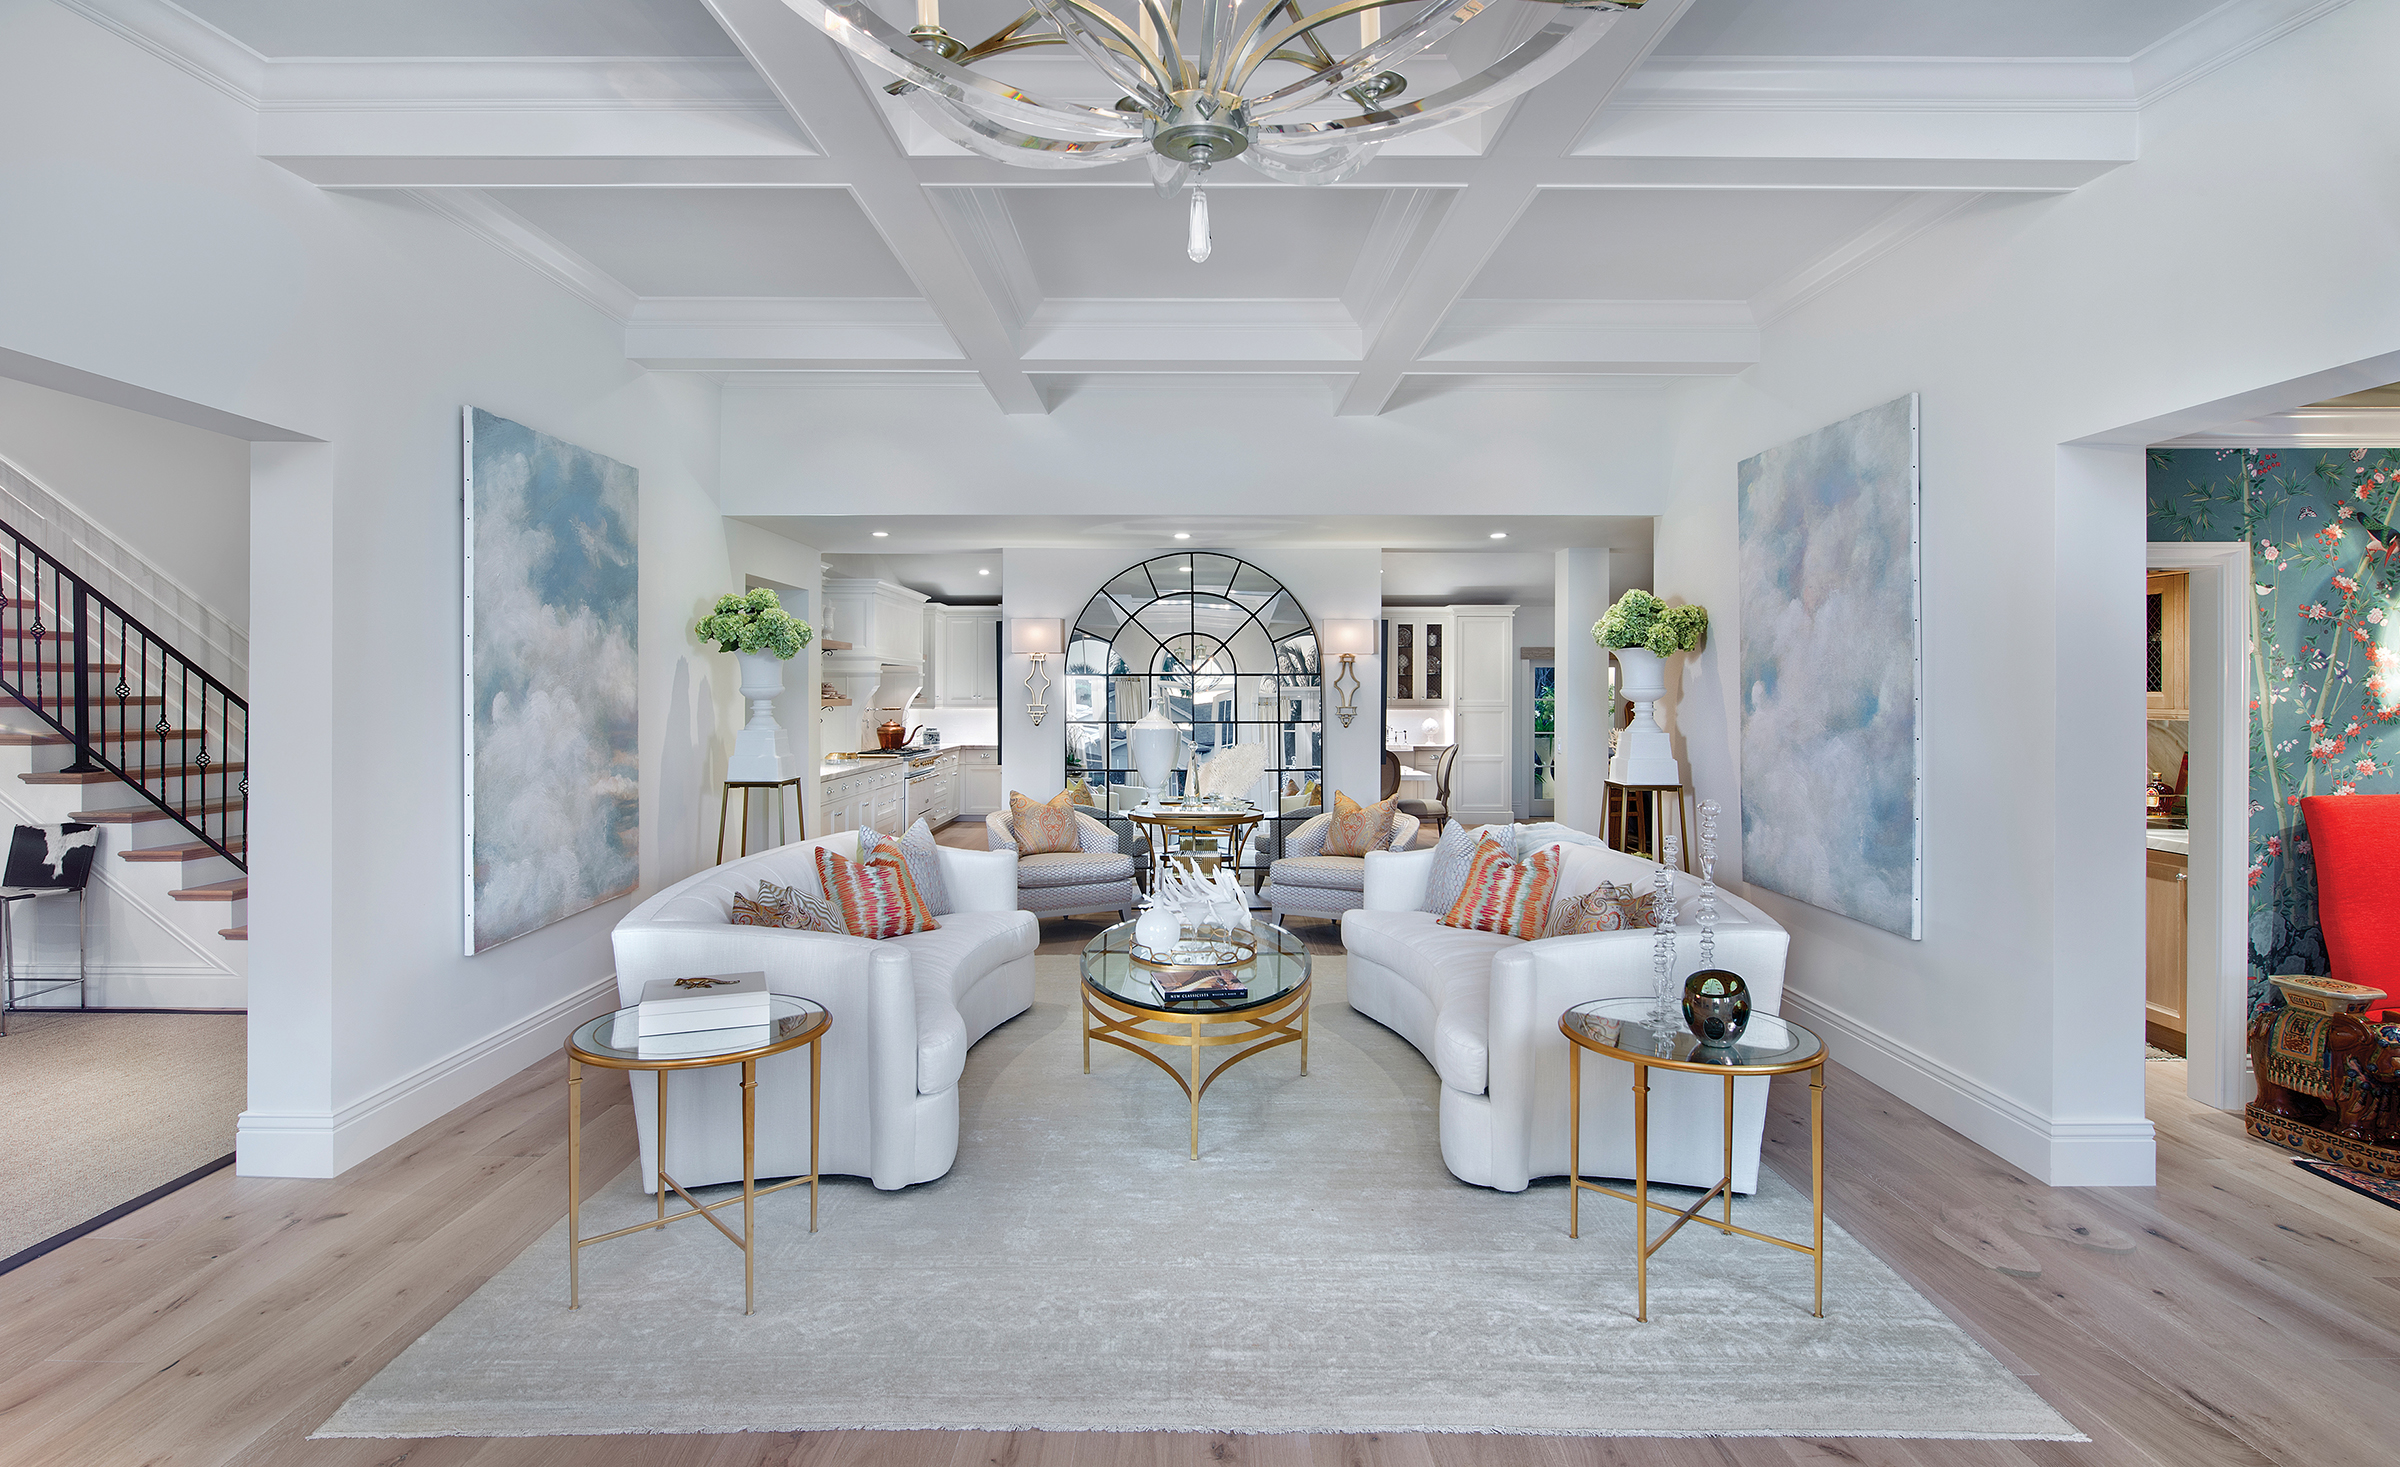 """This home was about surprise elements for me—from the way a hallway would open into an intimate sitting room, to accent items found throughout, I wanted people to be excited about each new space—,"" says August. An expertly curated mix of traditional formality and a relaxed lifestyle is apparent. The sleek silhouette of twin Maison sofas pairs with the gold finish of the coffee and side tables offering an '80s vibe. The art in this room is from August's Wendover collection, inspired by her love of Florida's always beautiful sky. The large antique mirror was retrofitted for the home and plays off the arched windows it reflects."